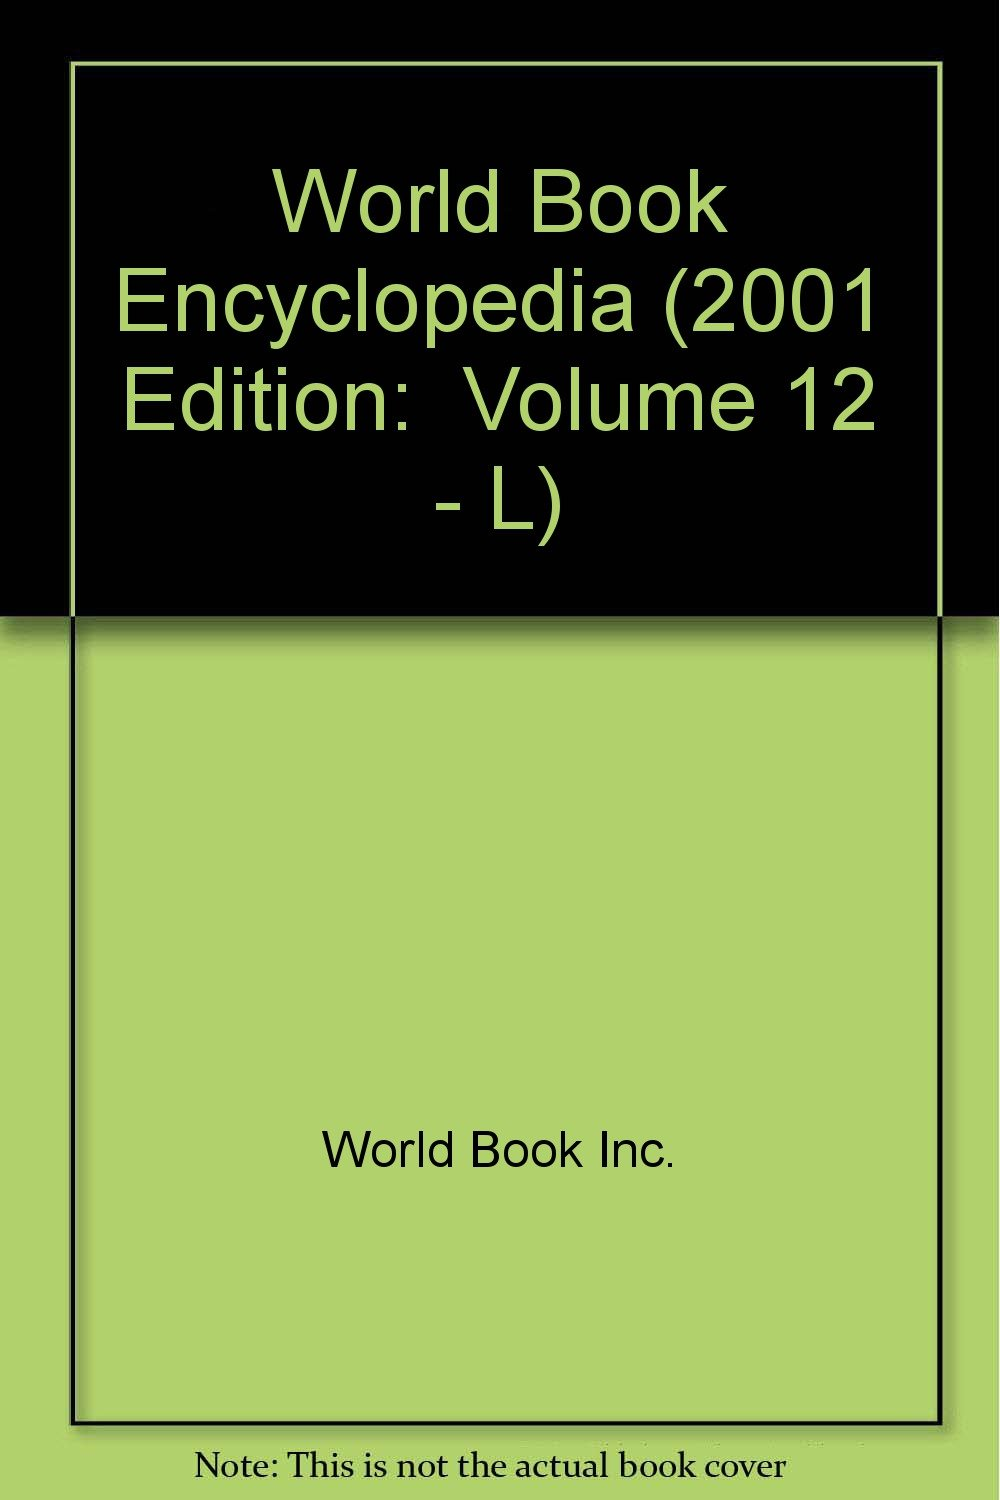 2001 world book encyclopedia set by world book encyclopedia.